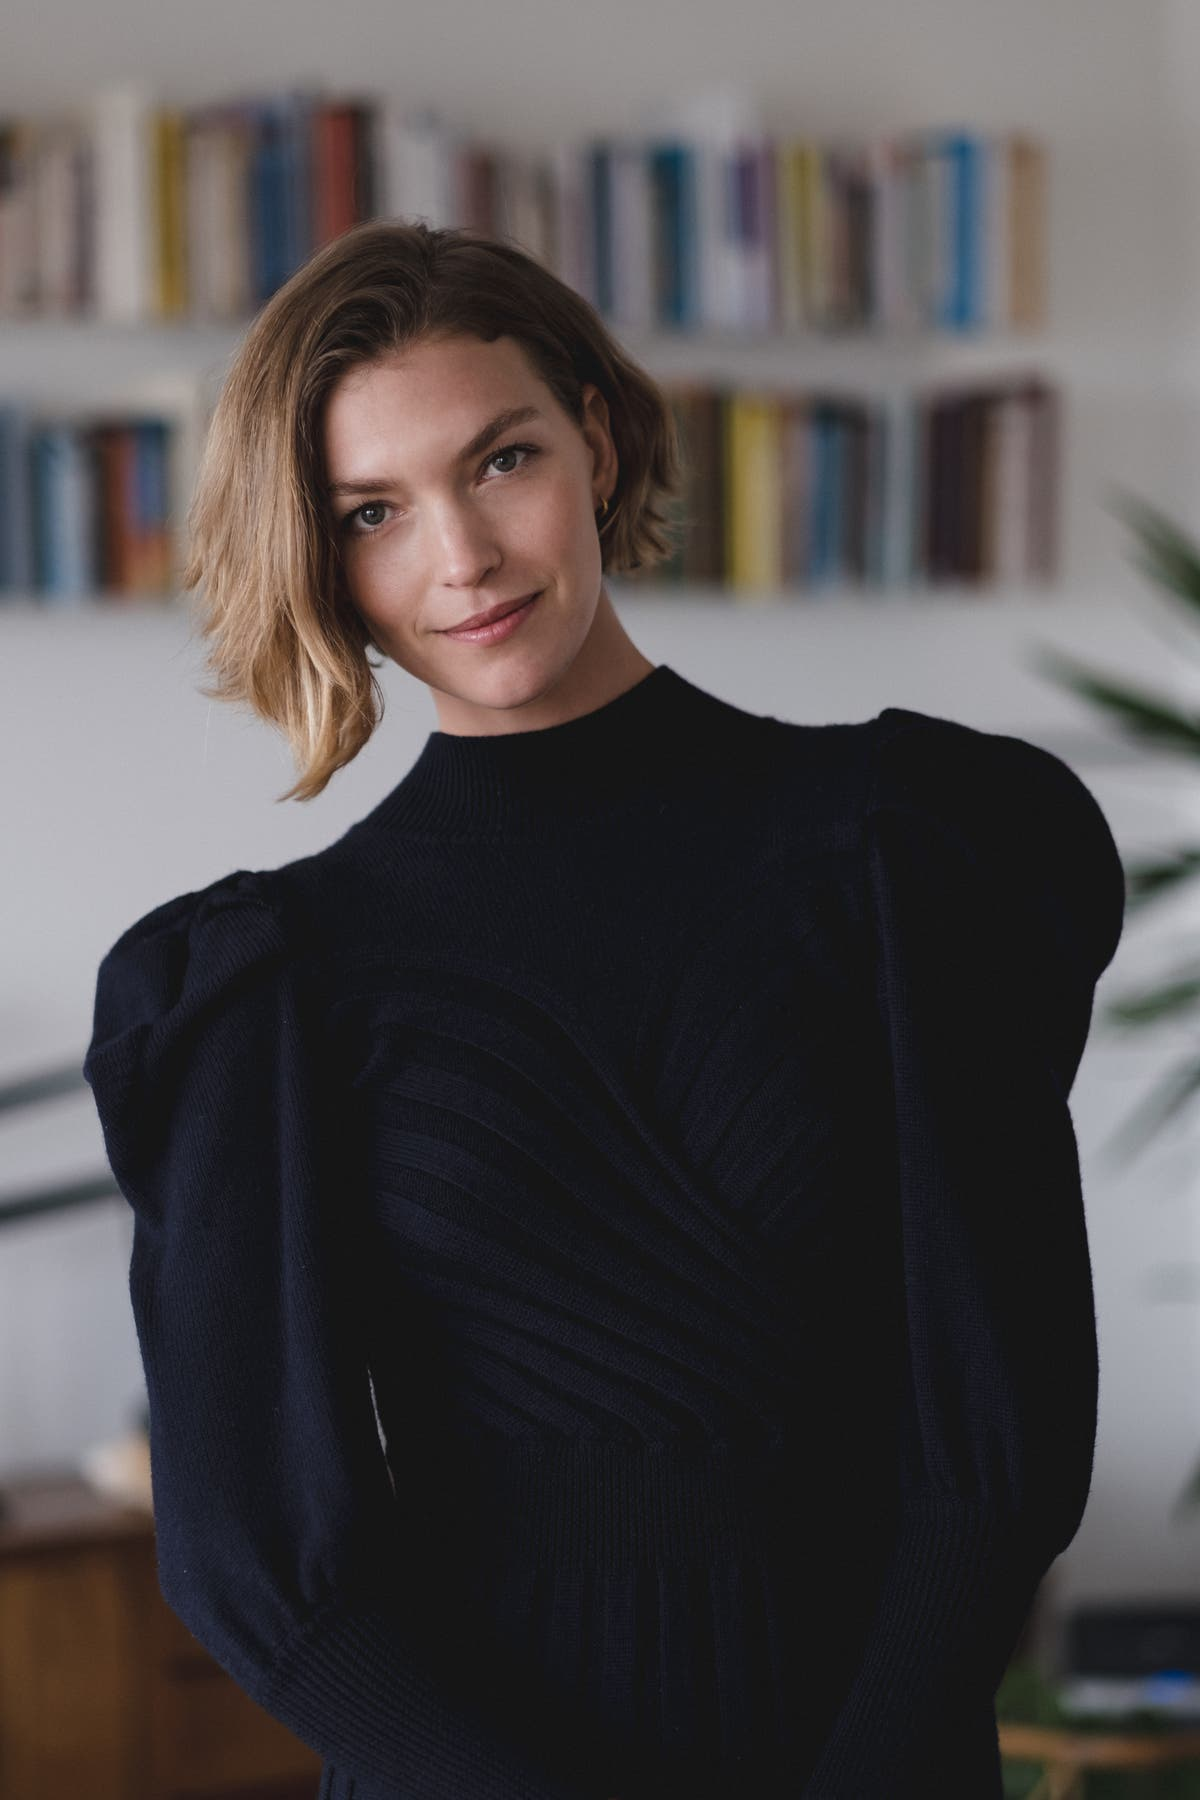 Model and activist Arizona Muse talks family, fashion and farming, as she embraces huge change in her life